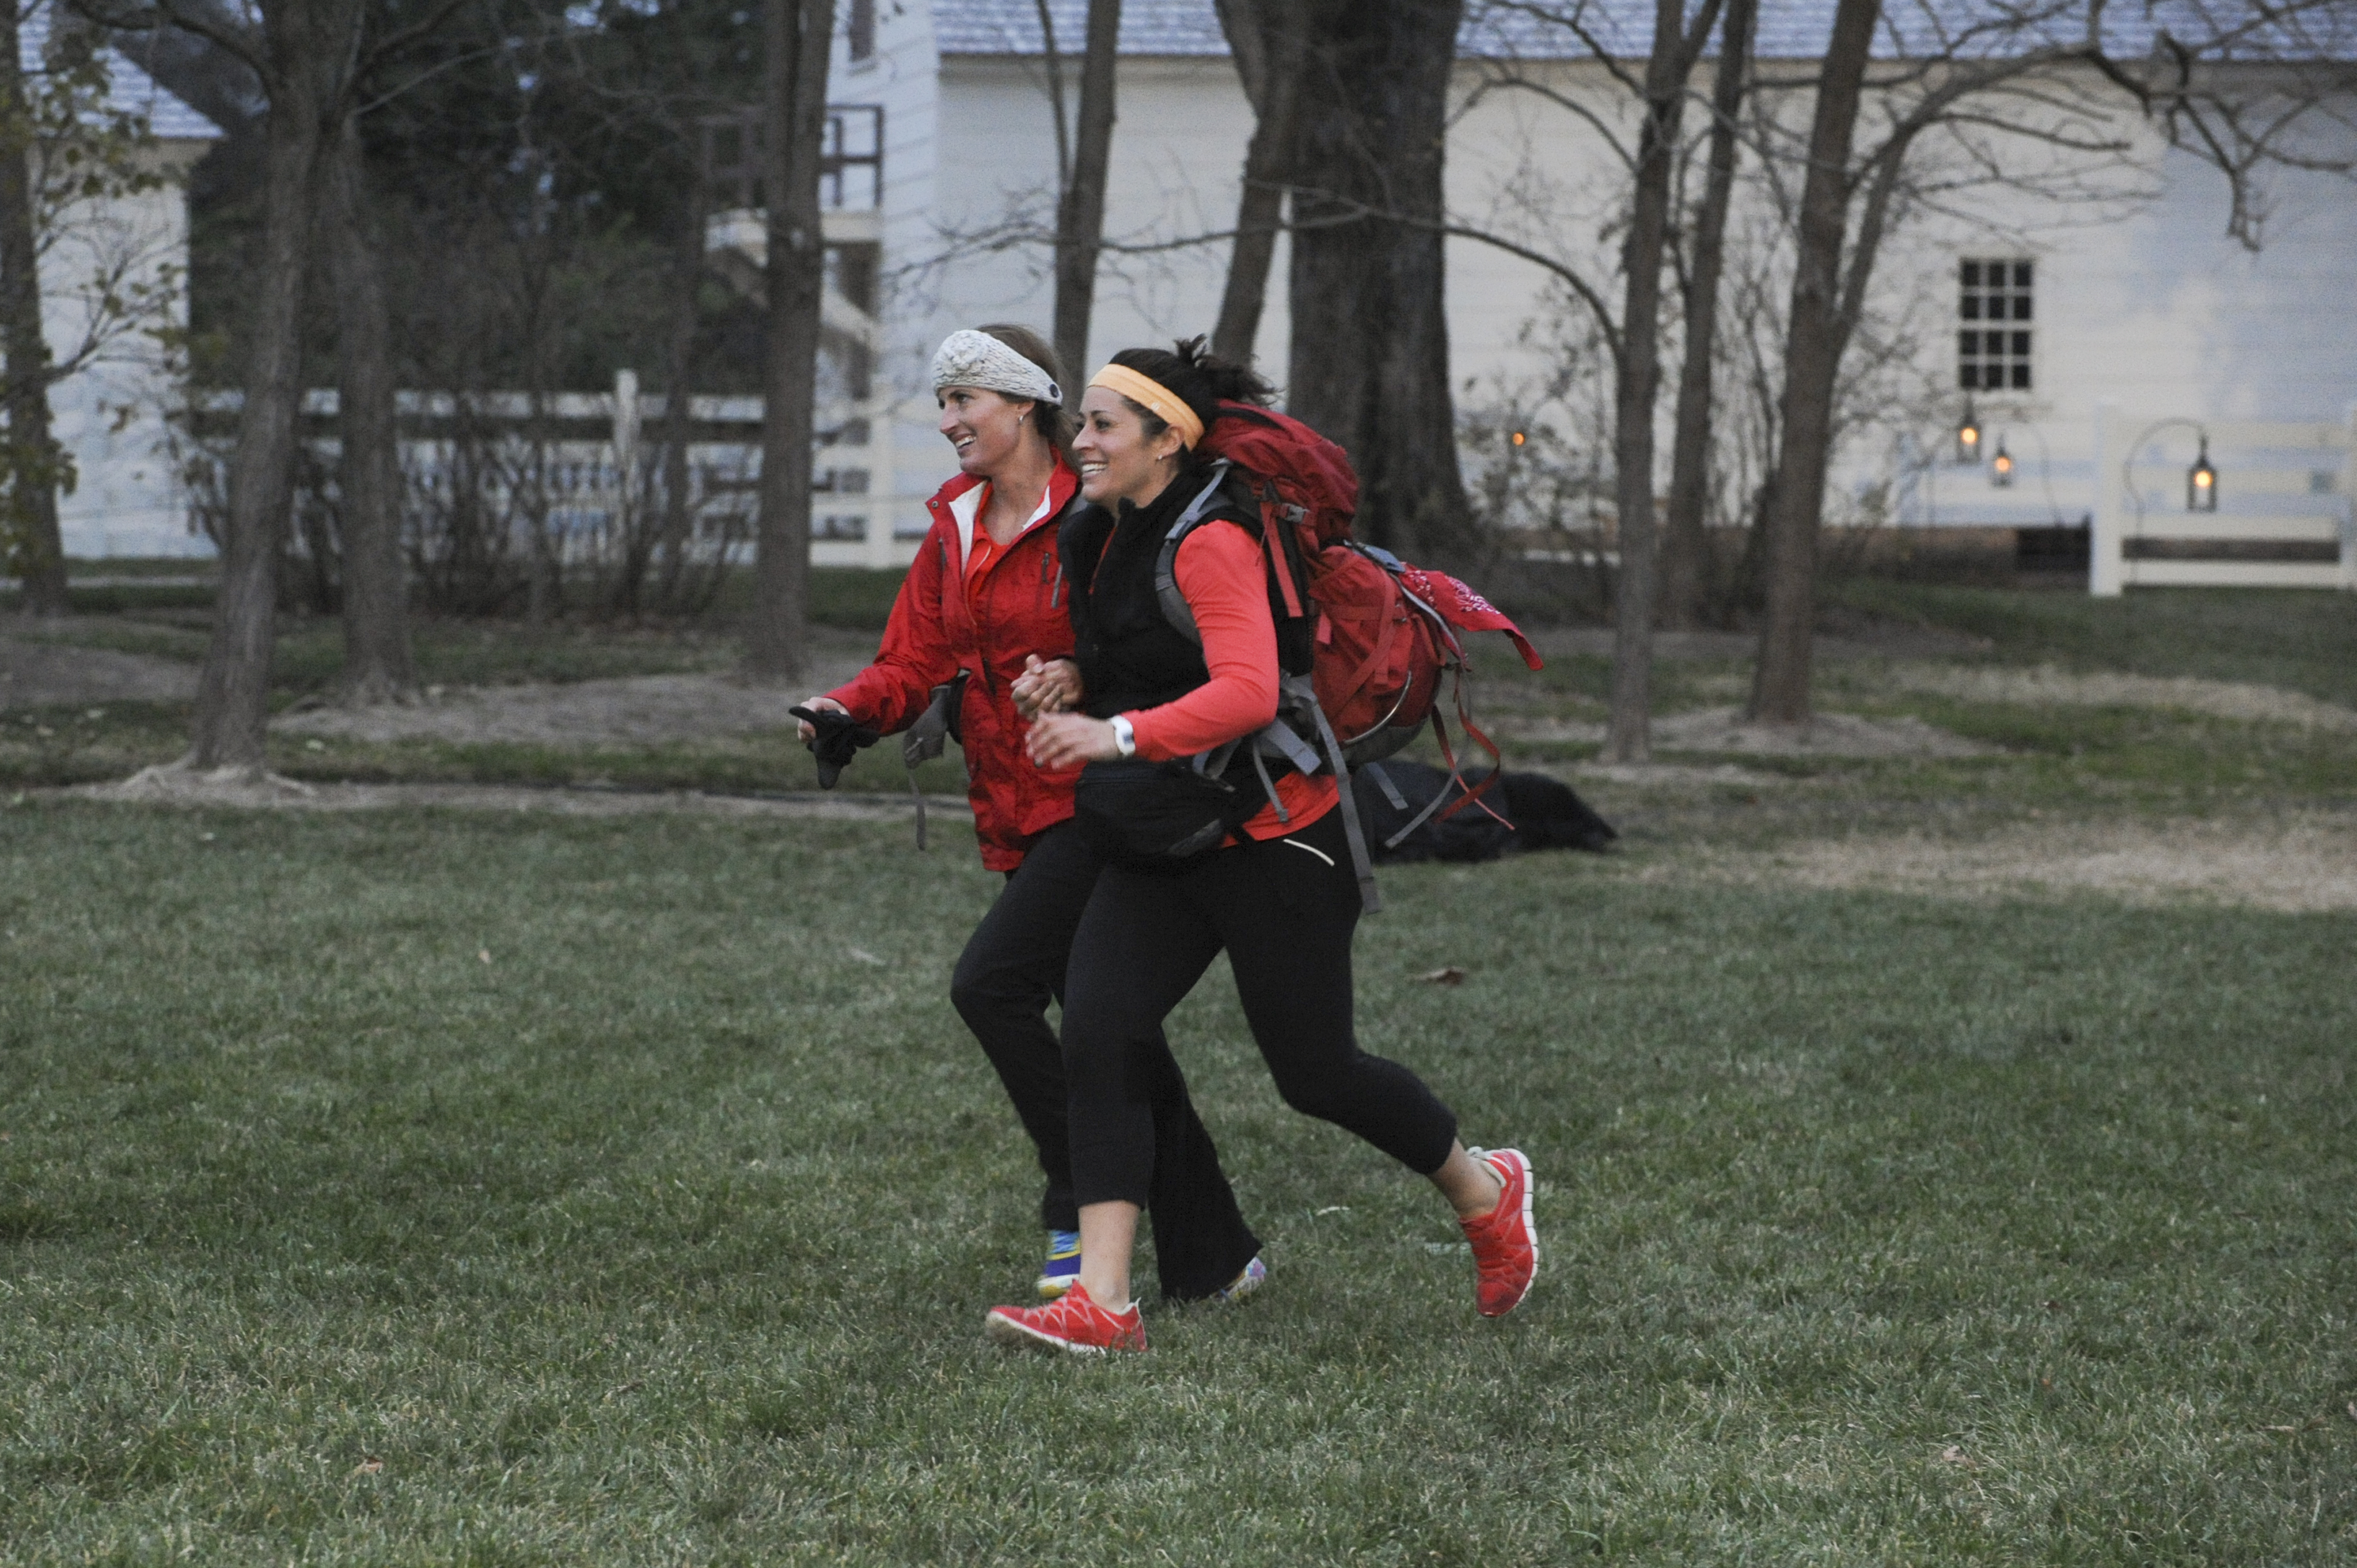 Running to the finish line in the season finale of The Amazing Race